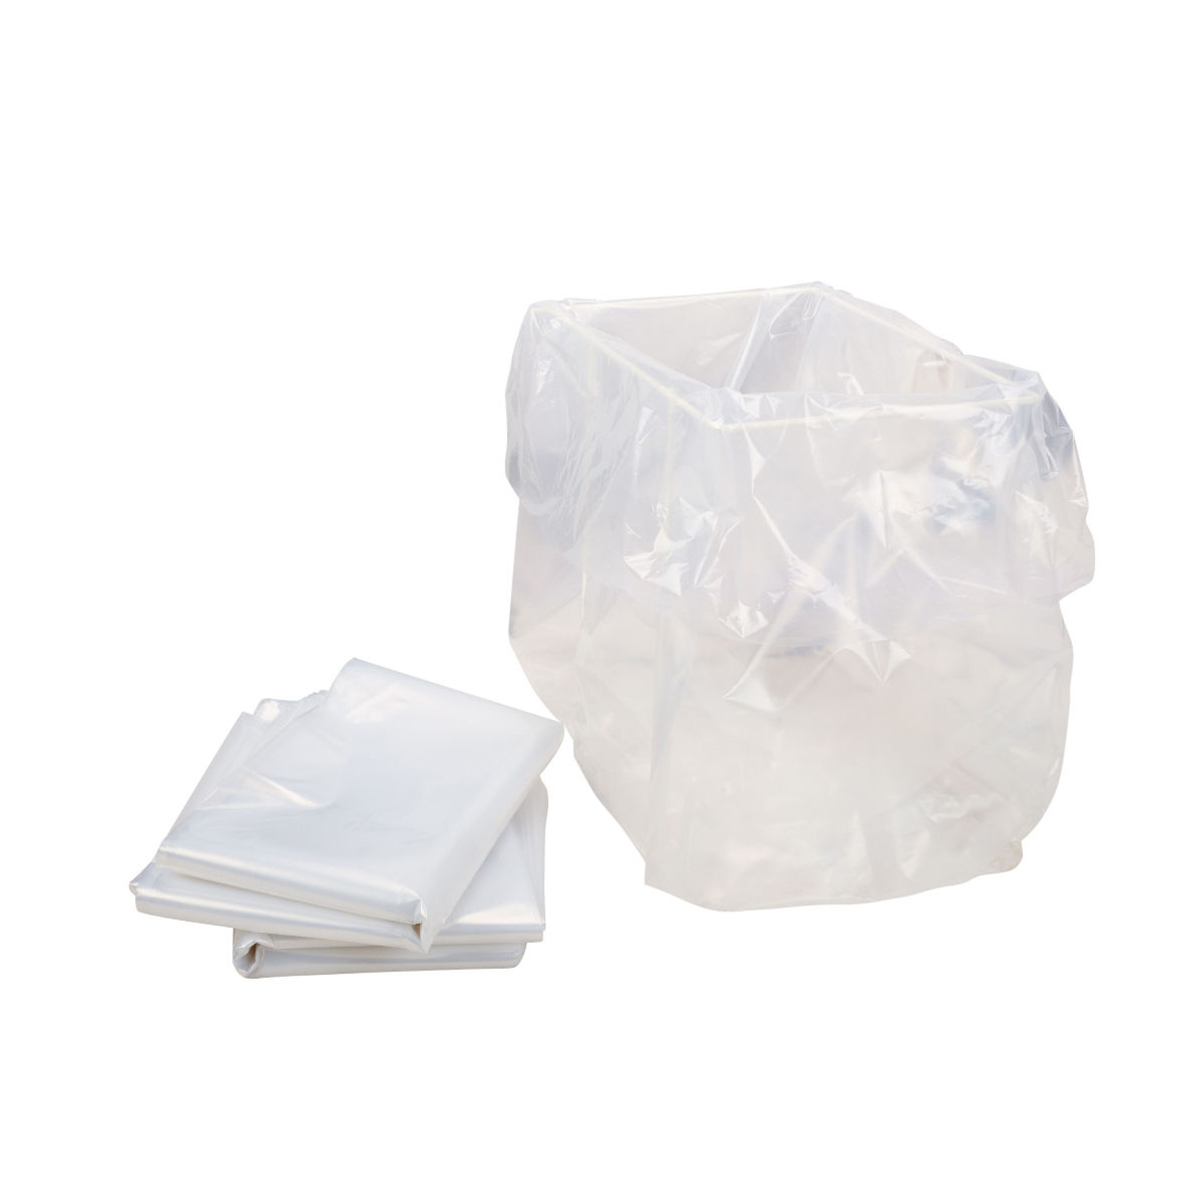 HSM White Shredder Bags 10pk